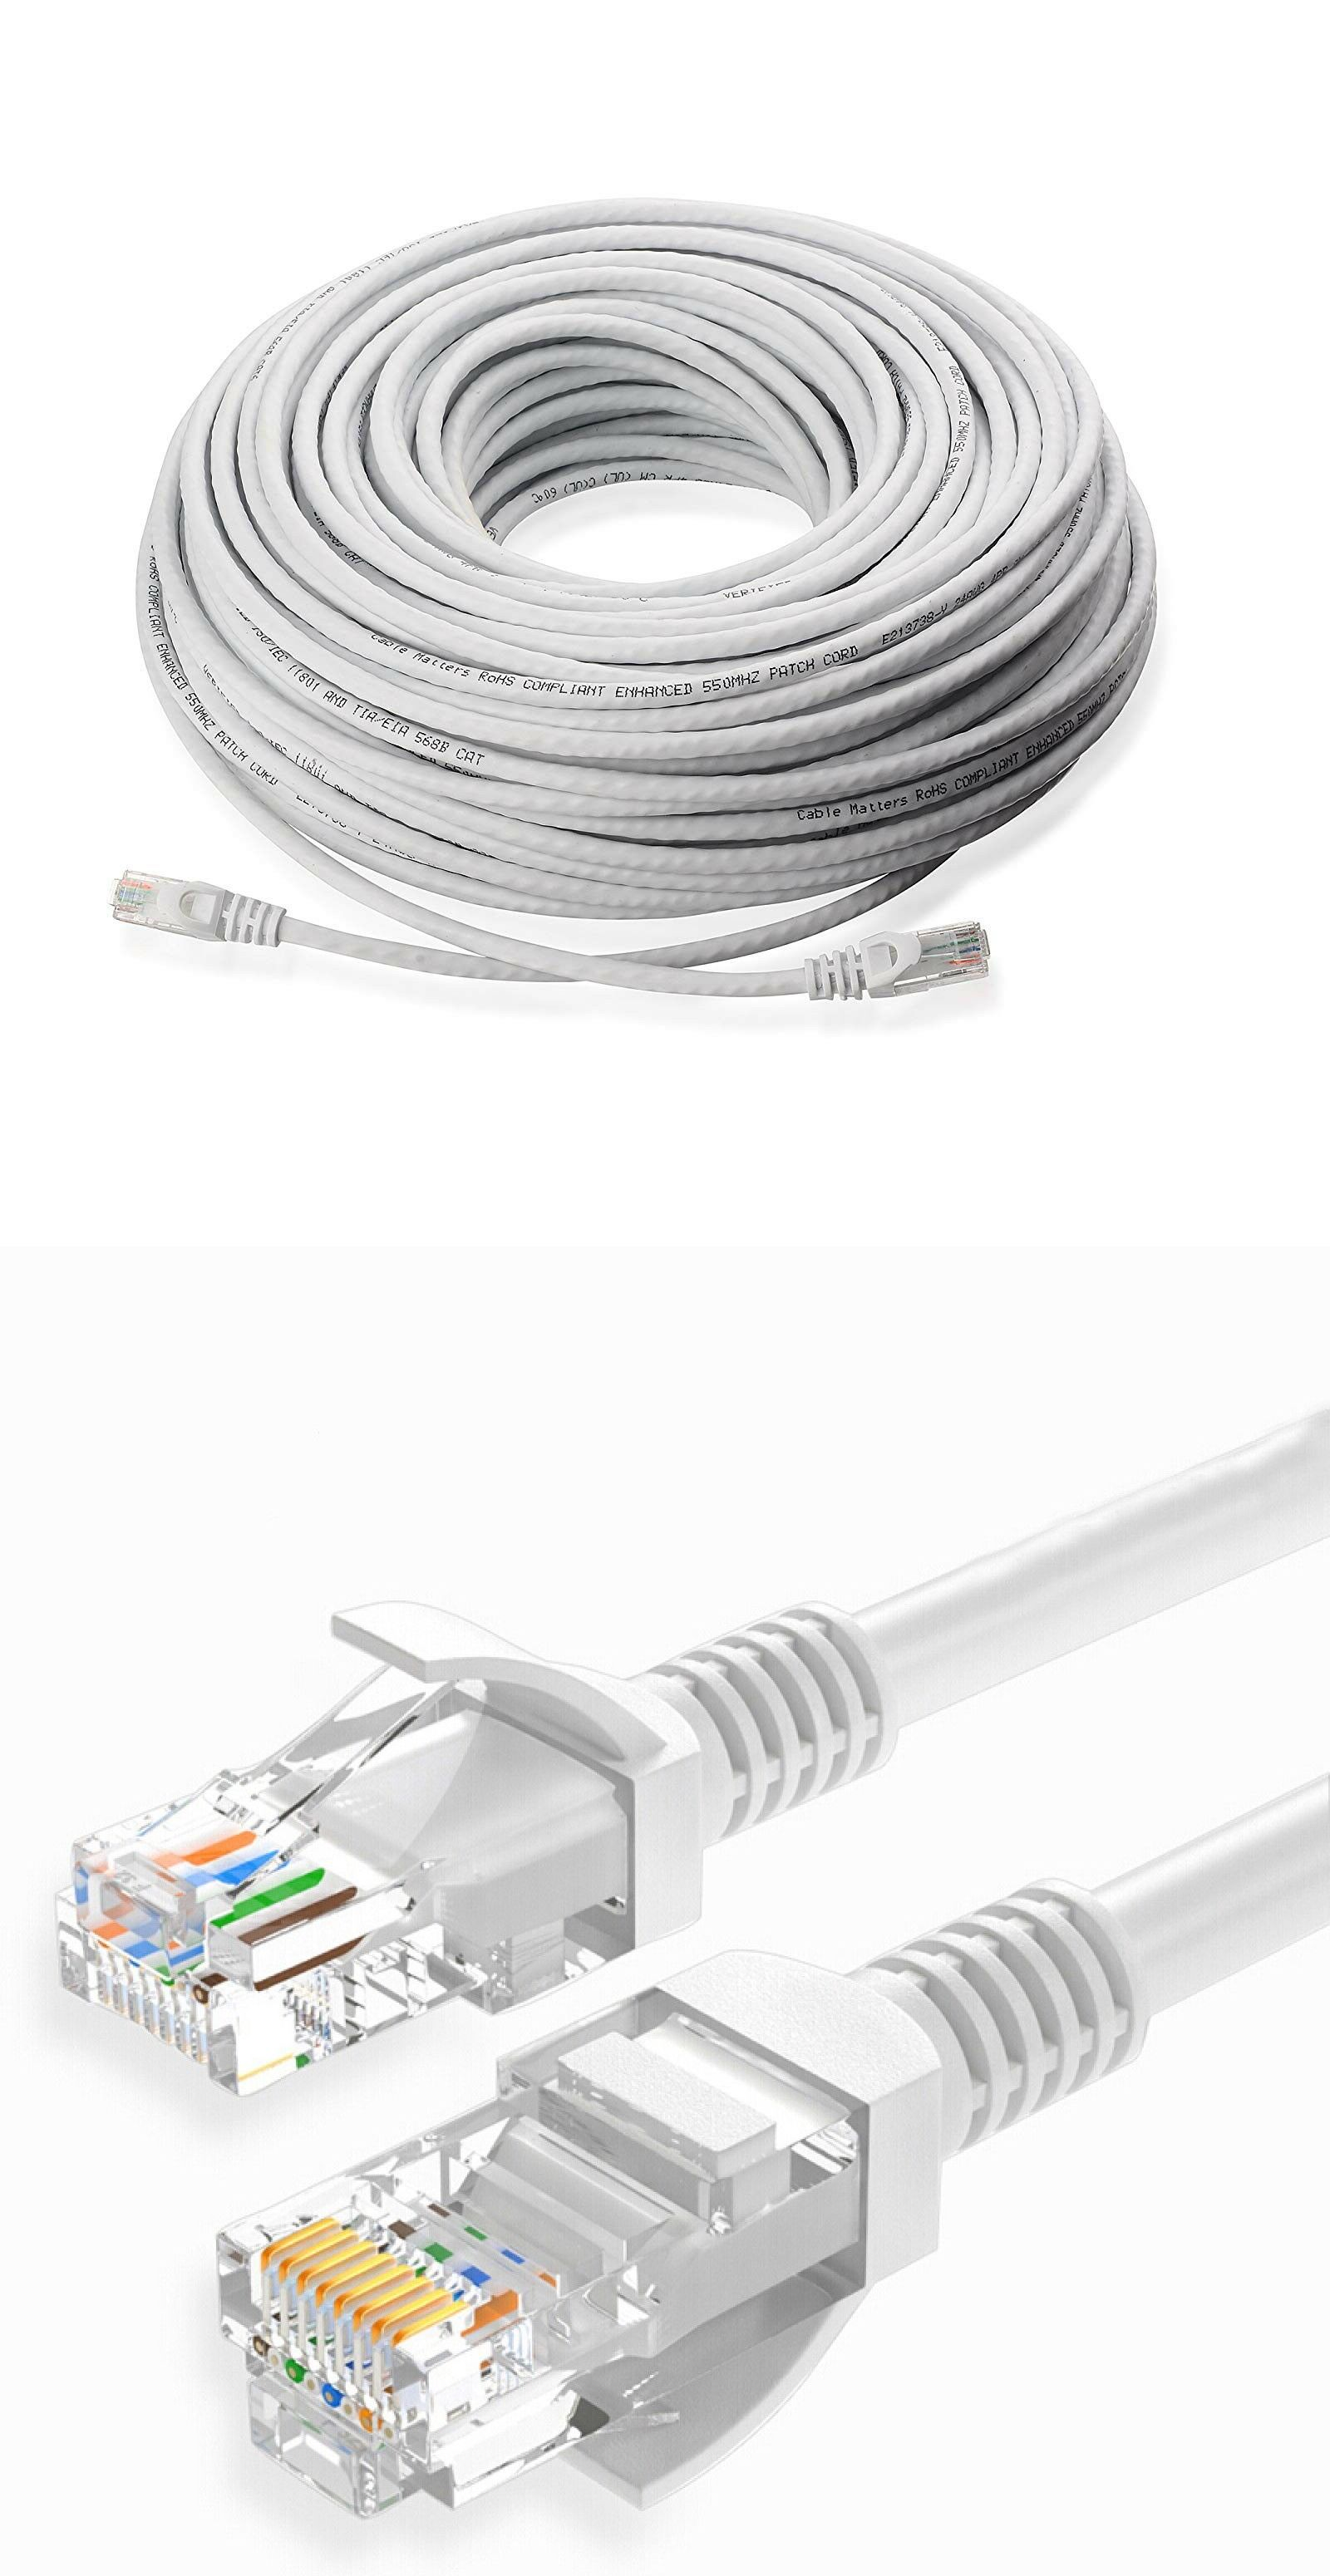 Cables RJ45 8P8C 64035 150Ft Cat5e Poe Ip